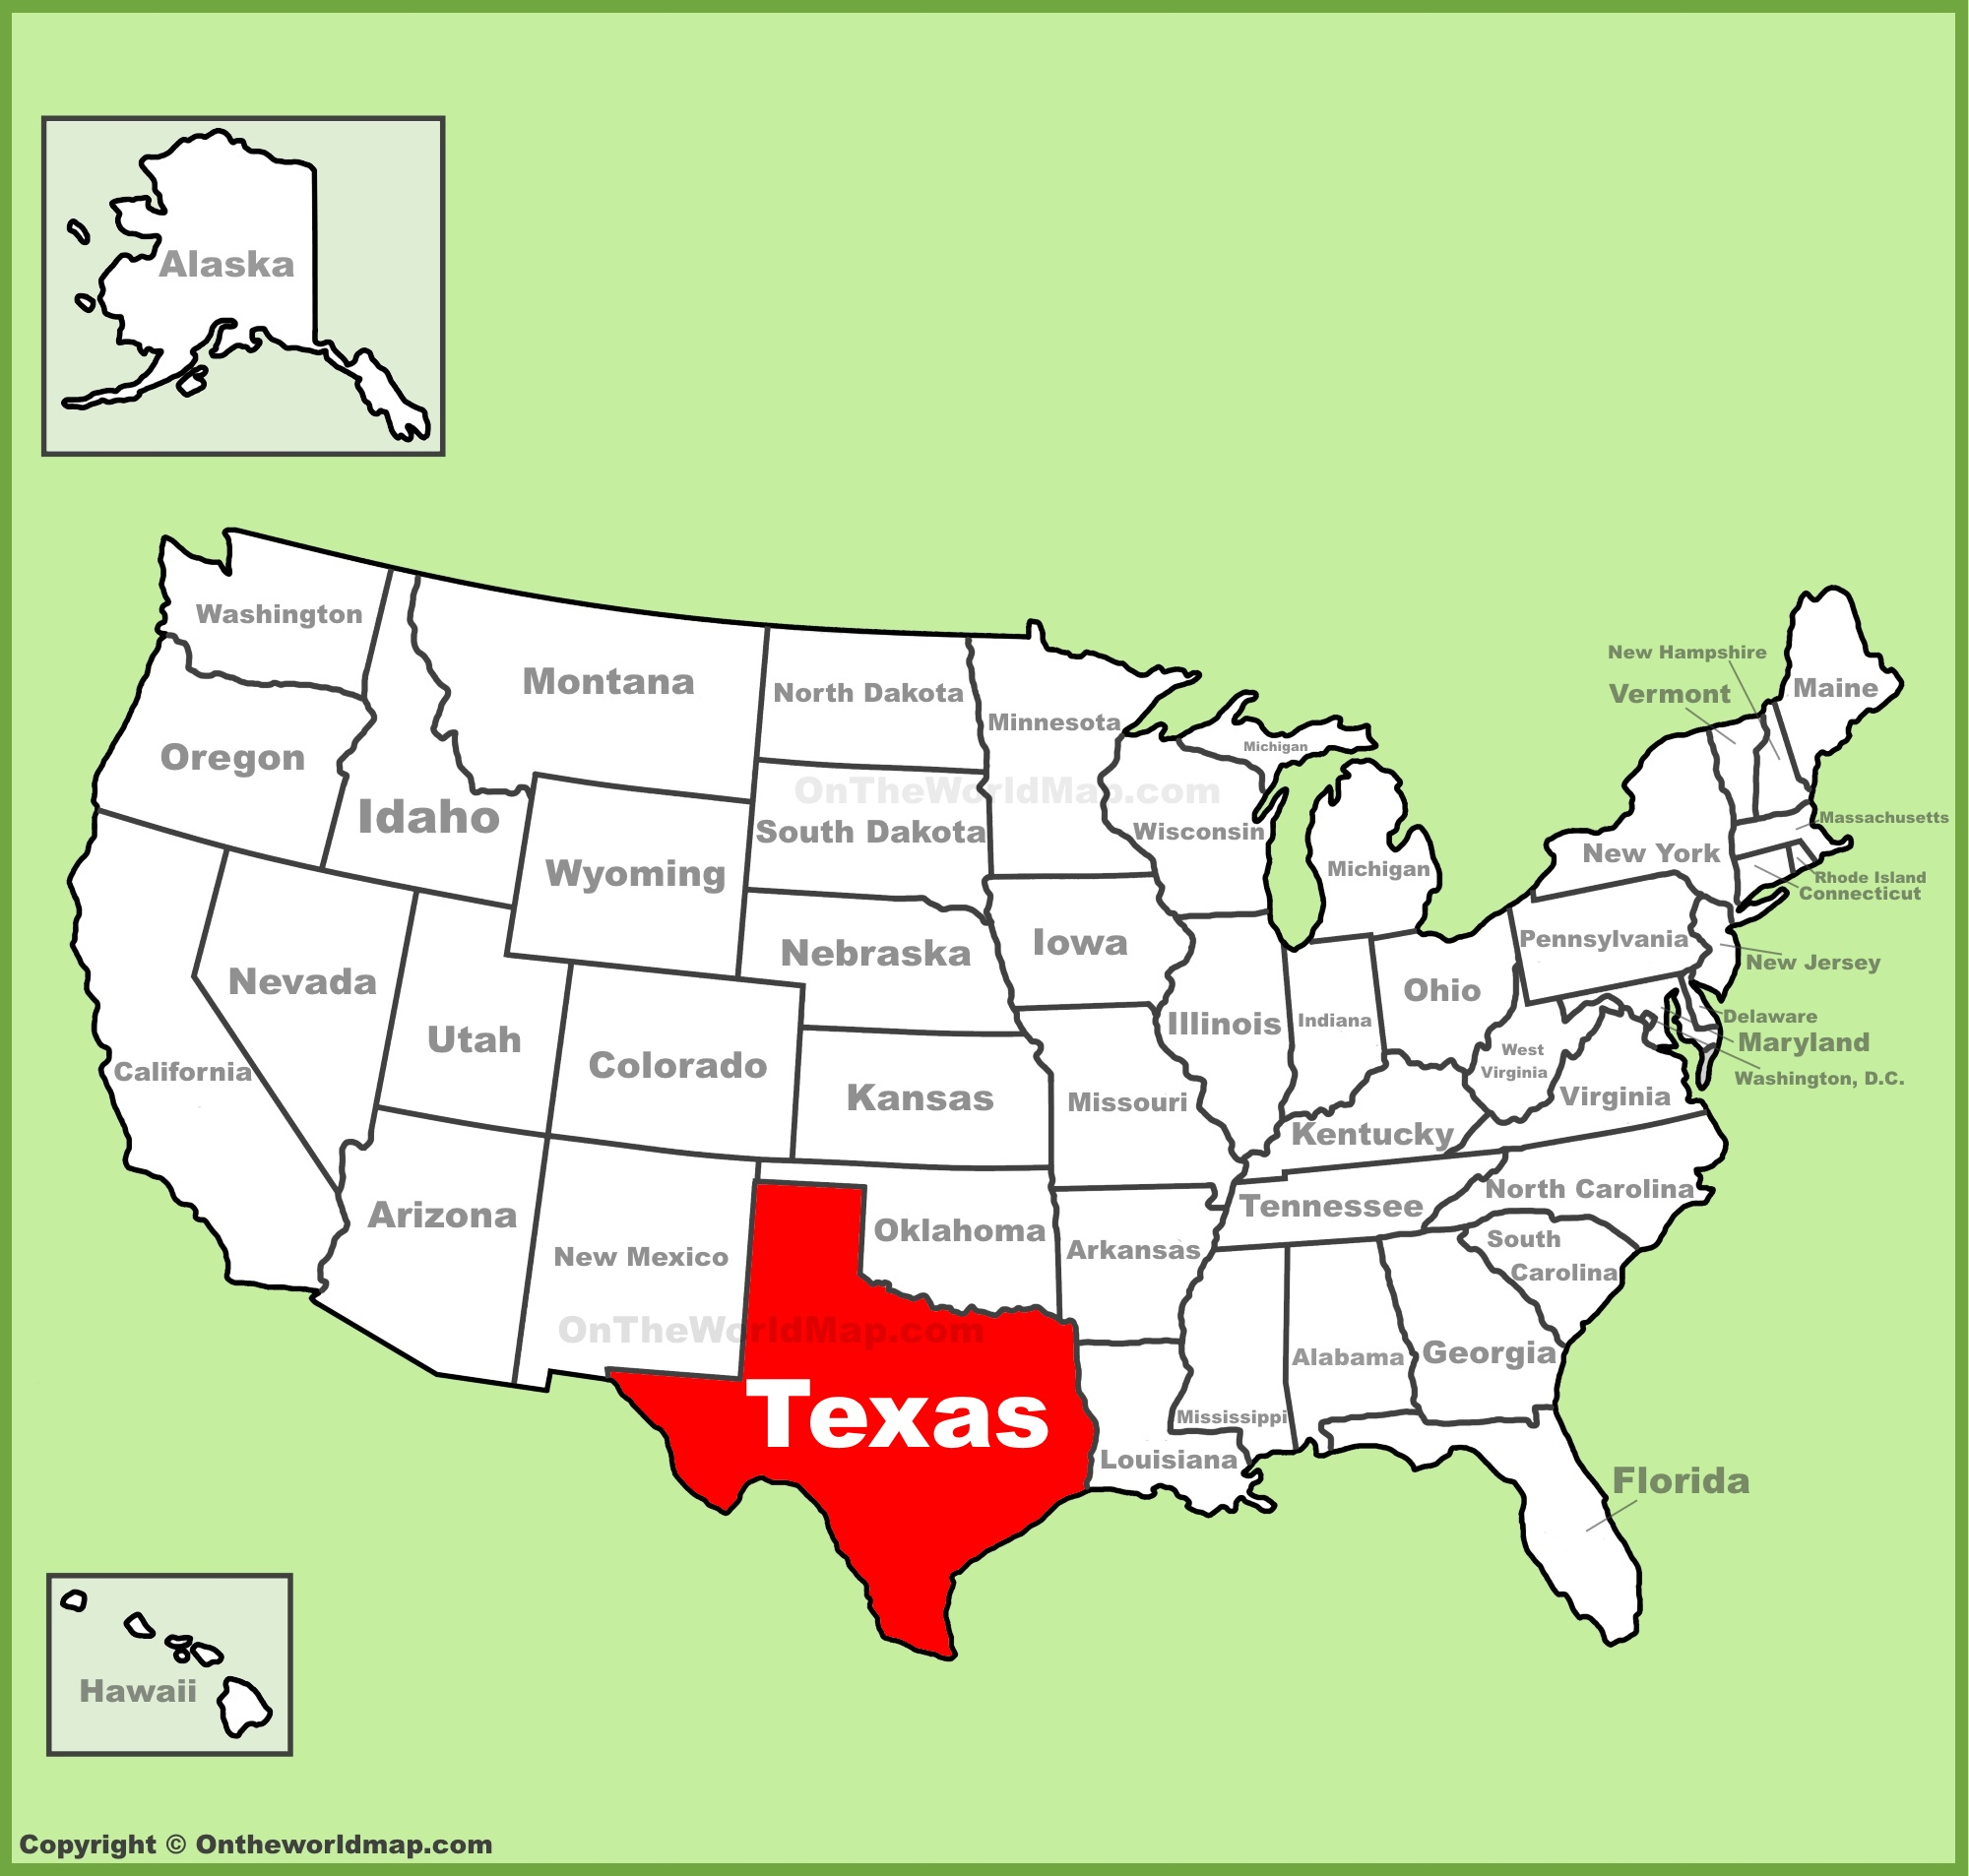 Map Of State Of Texas Texas State Maps | USA | Maps of Texas (TX) Map Of State Of Texas